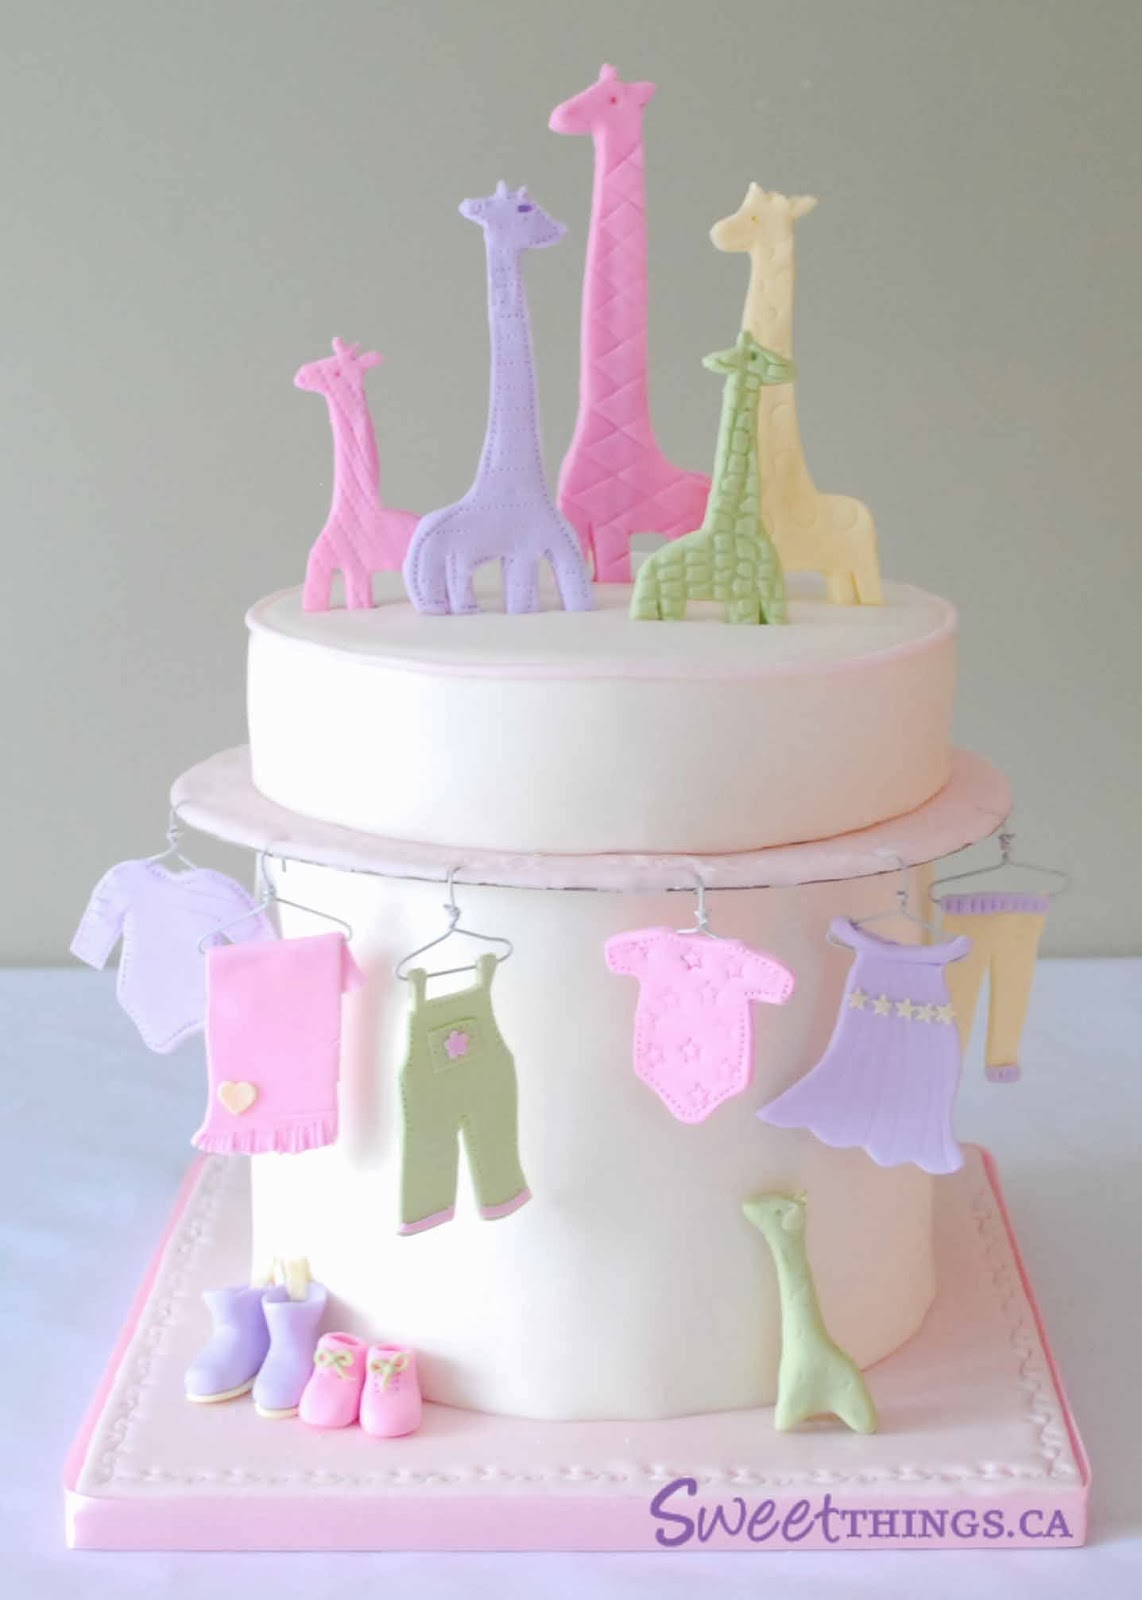 How Long Is A Baby Cake